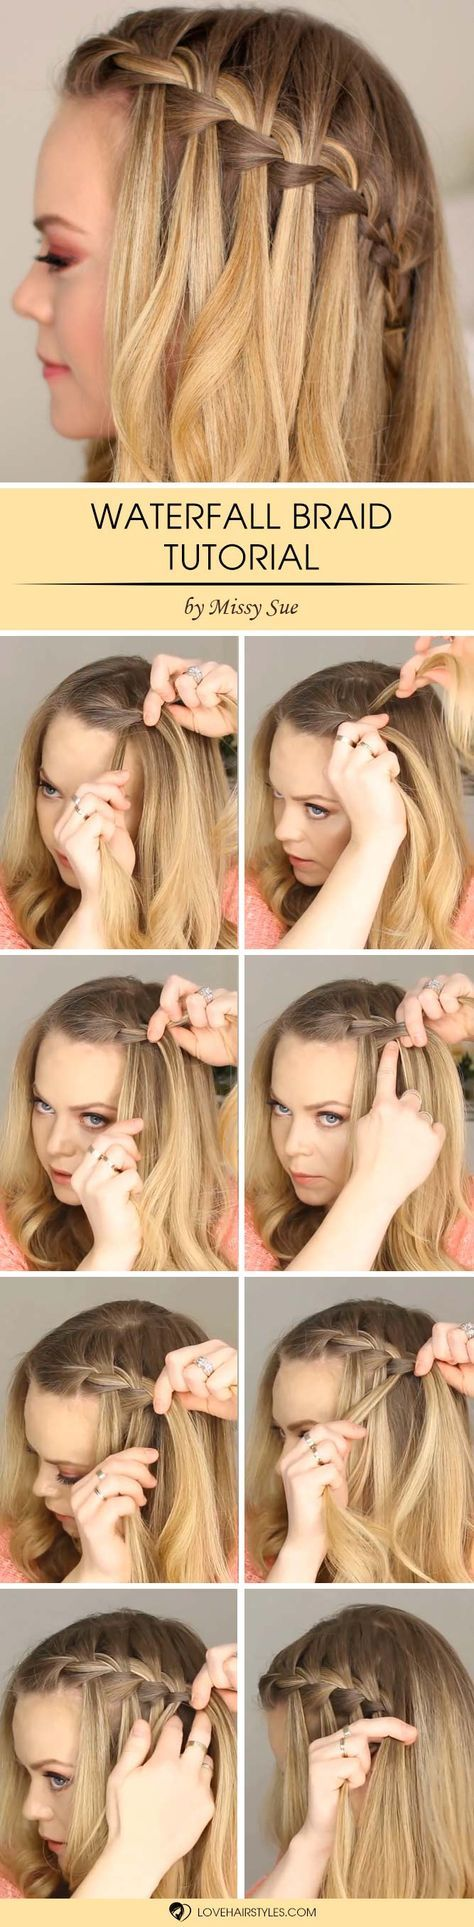 épinglé par ❃❀CM❁✿⊱Are you looking for a simple tutorial that can teach you how to do a waterfall braid? Our detailed tutorial is just for you! Master this style fast!